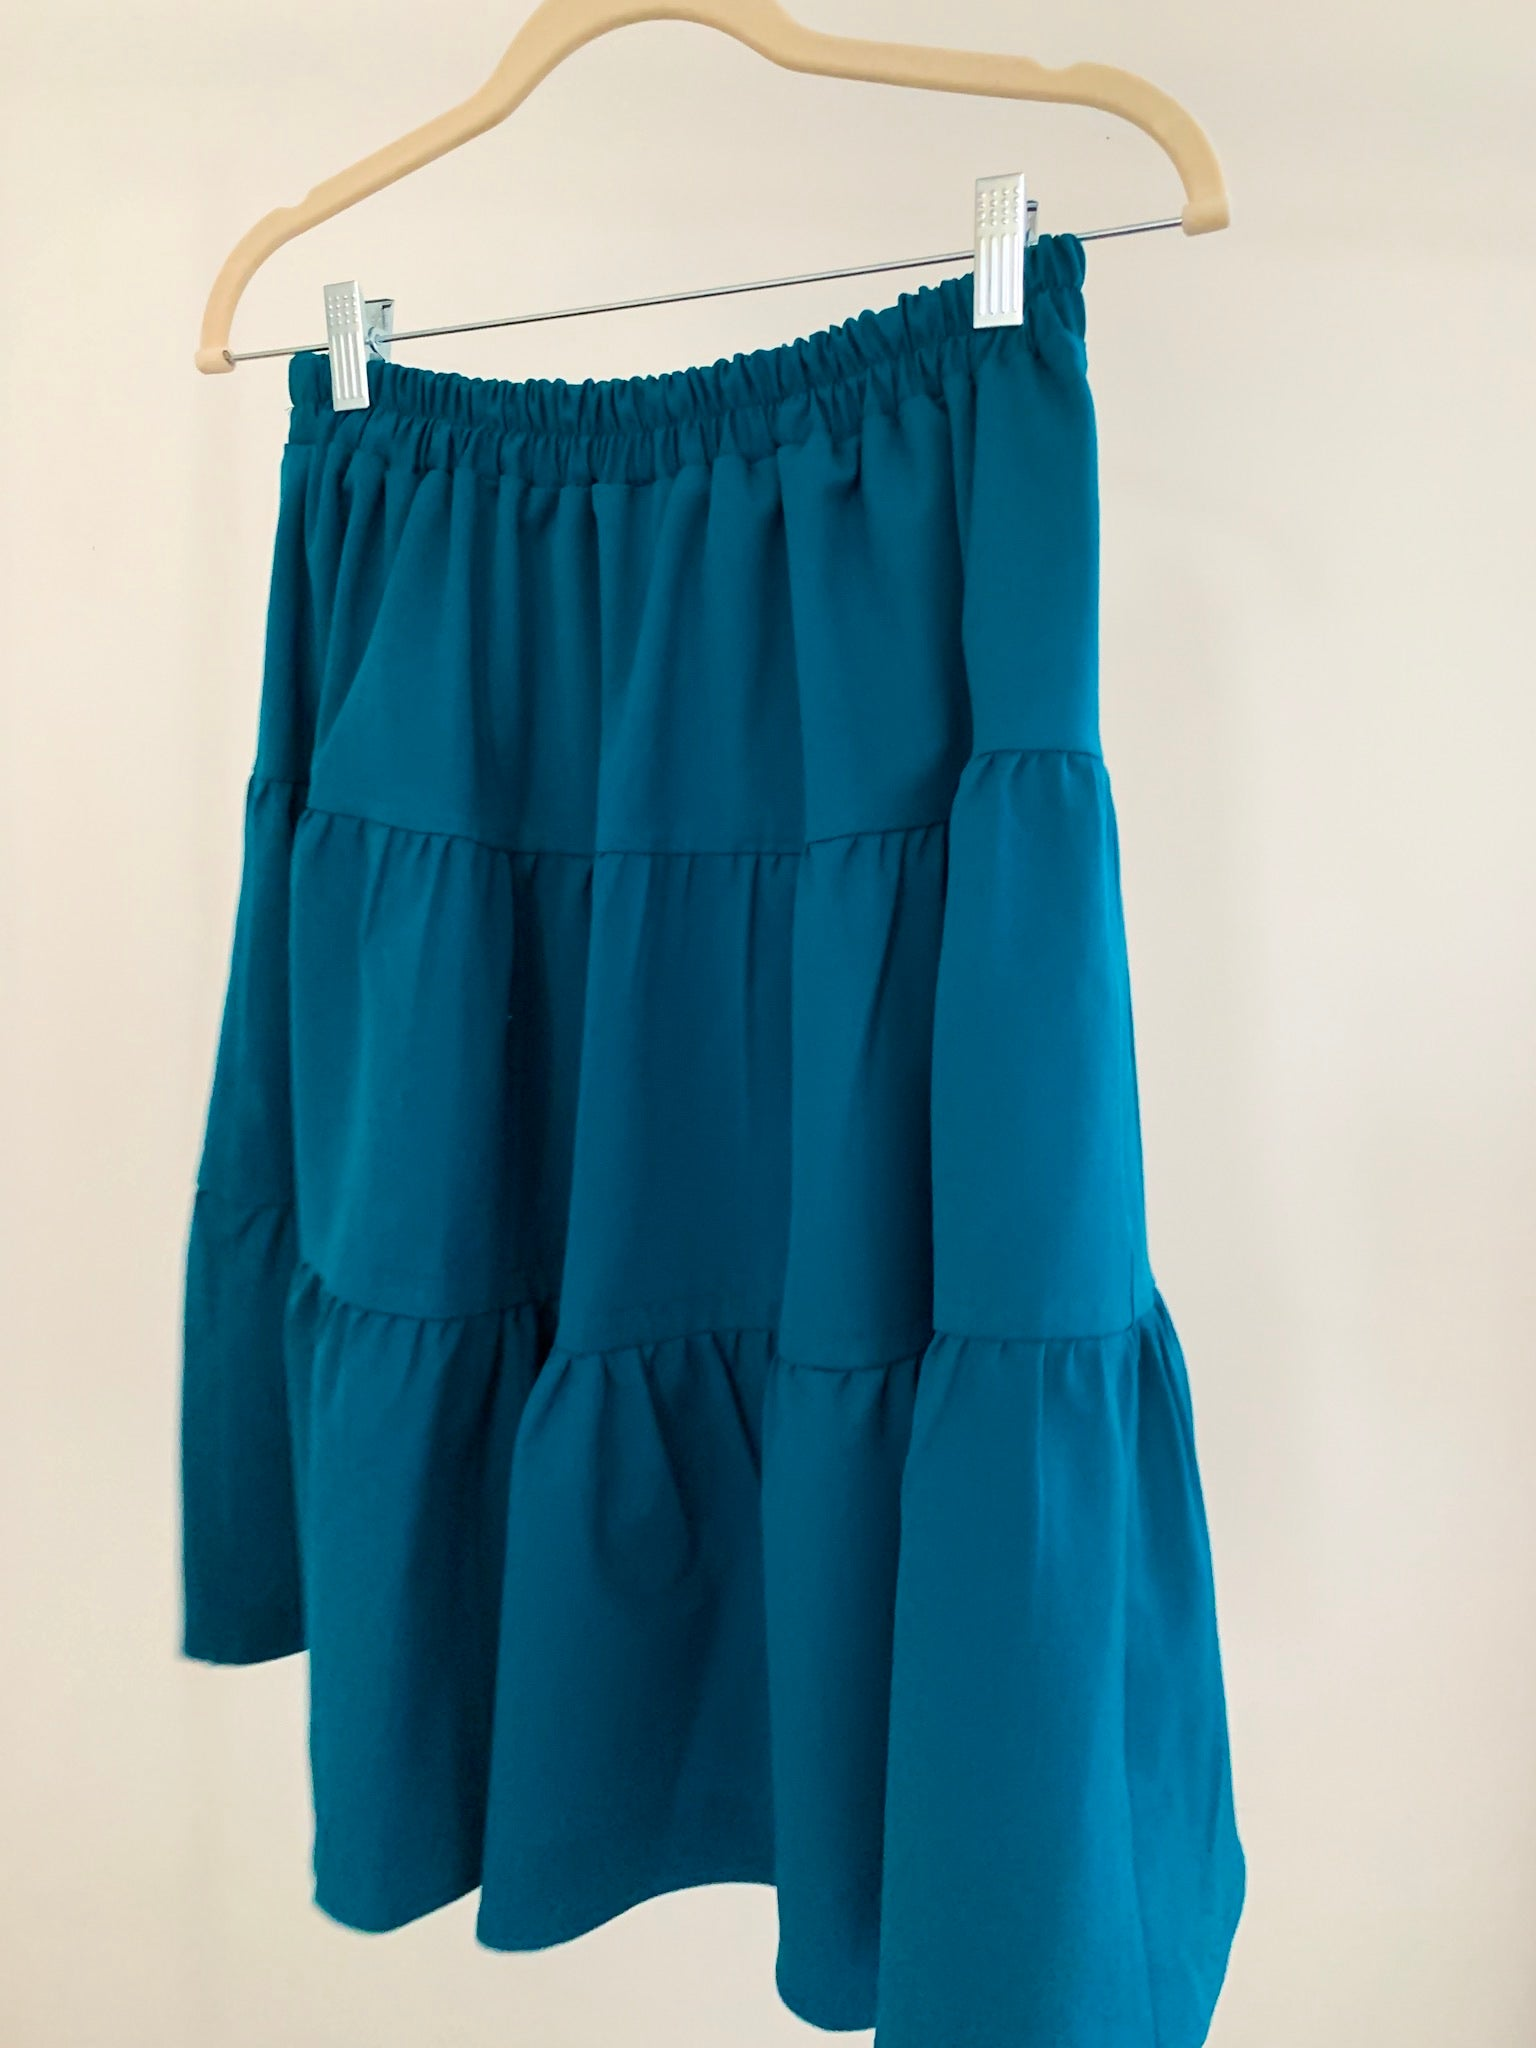 The Teal Flirt Skirt *Standard*